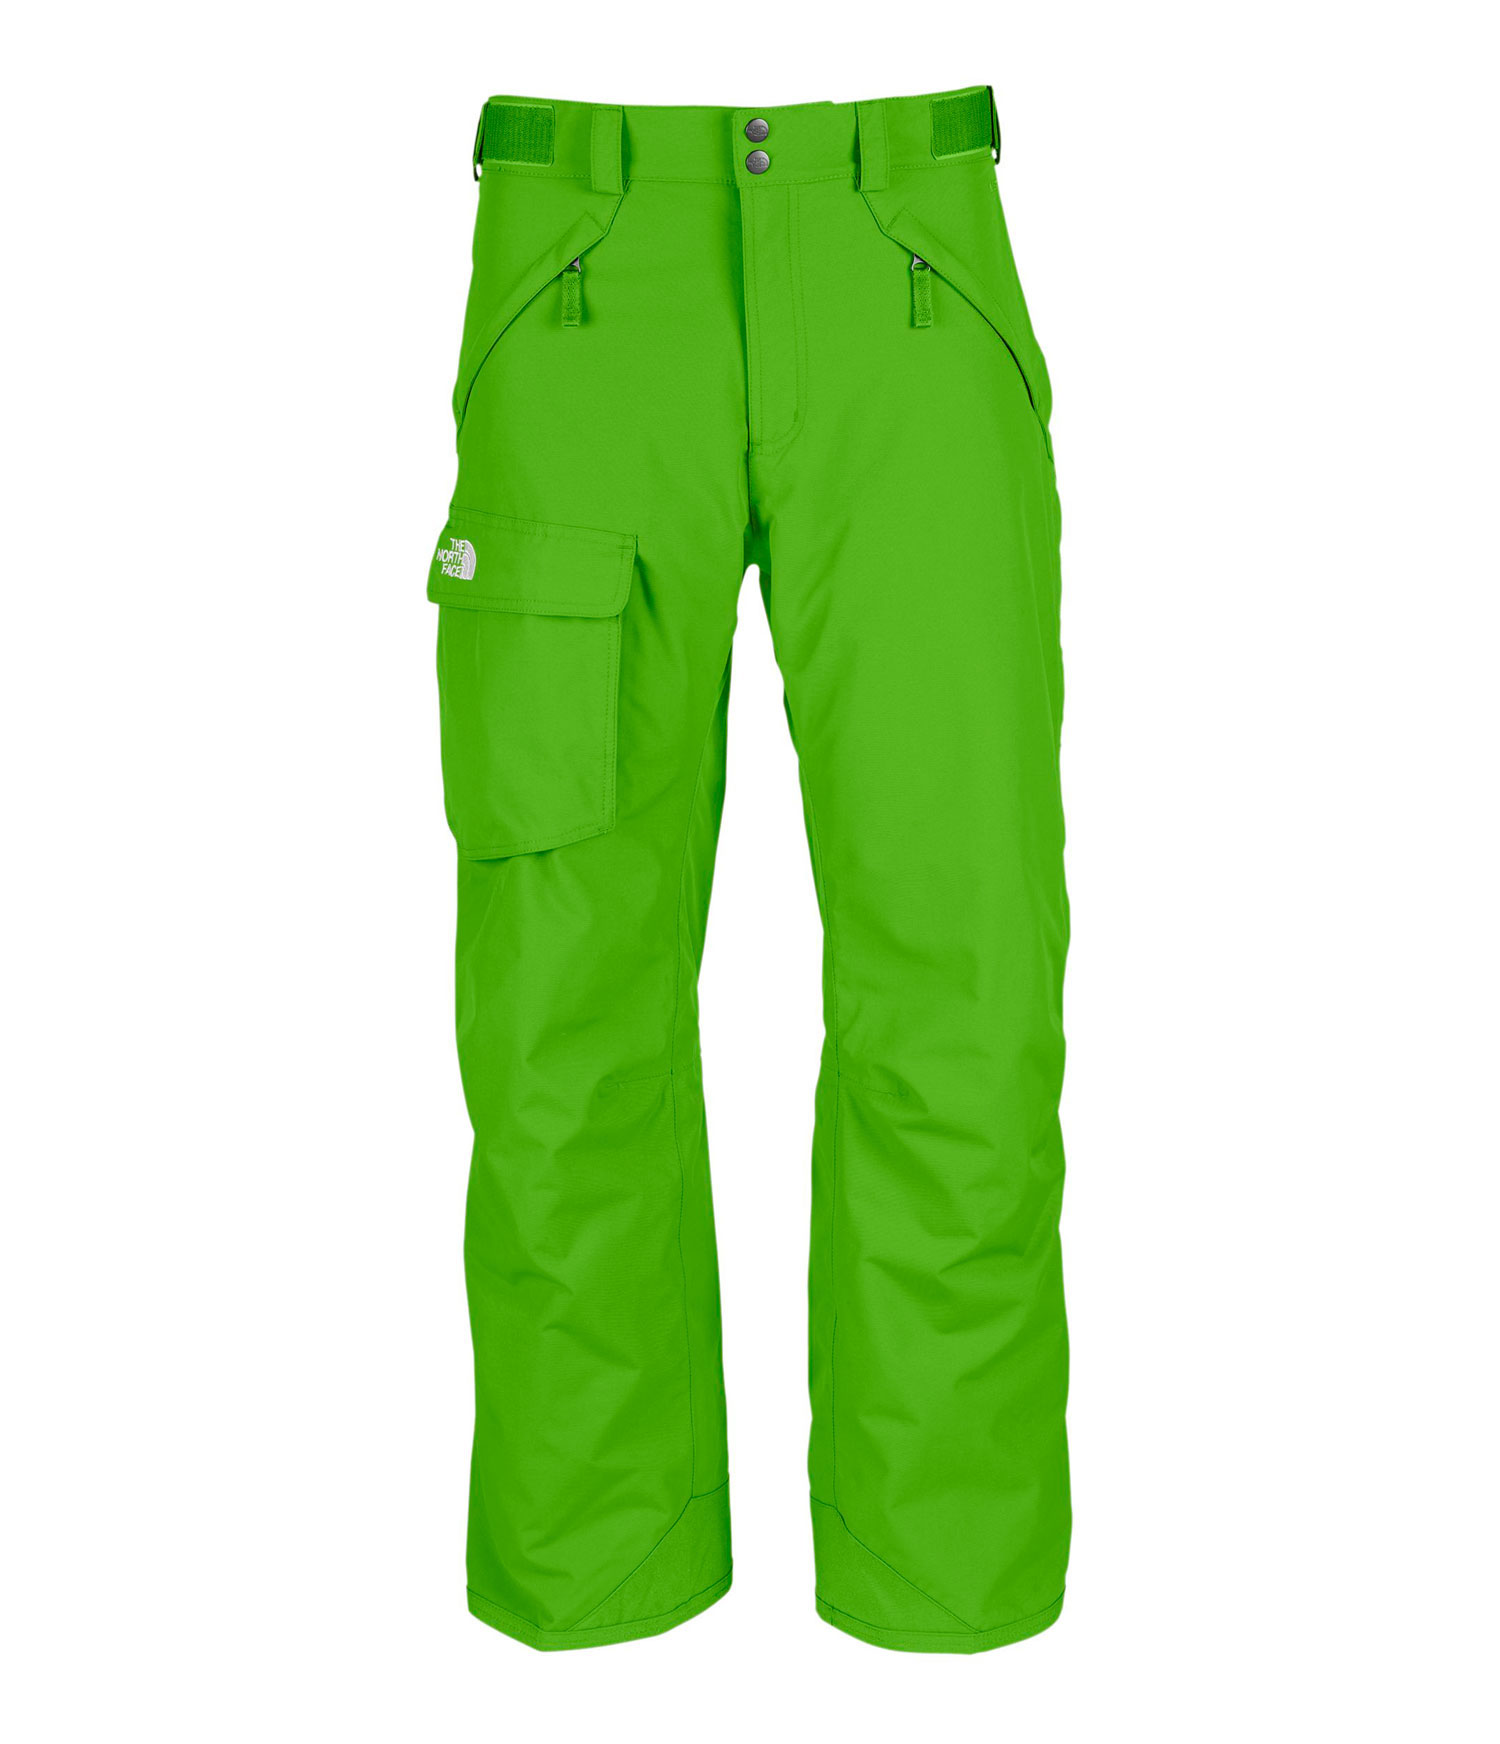 "Ski Free-fitting, high-performance pant with durable, waterproof construction. Key Features of The North Face Freedom Shell Ski Pants: Avg Weight: 770 g (27.16 oz) Inseam: S 29"", R 31"", L 33"" Fabric: 210D x 235D 189 g/m2 HyVent 2L foxfaille nylon faille Waterproof, breathable, fully seam sealed Adjustable waist tabs Handwarmer zip pockets Exterior thigh vents with mesh gussets Flap cargo pocket StretchVent gaiter with gripper elastic Chimney Venting system Reinforced cuff - $97.95"